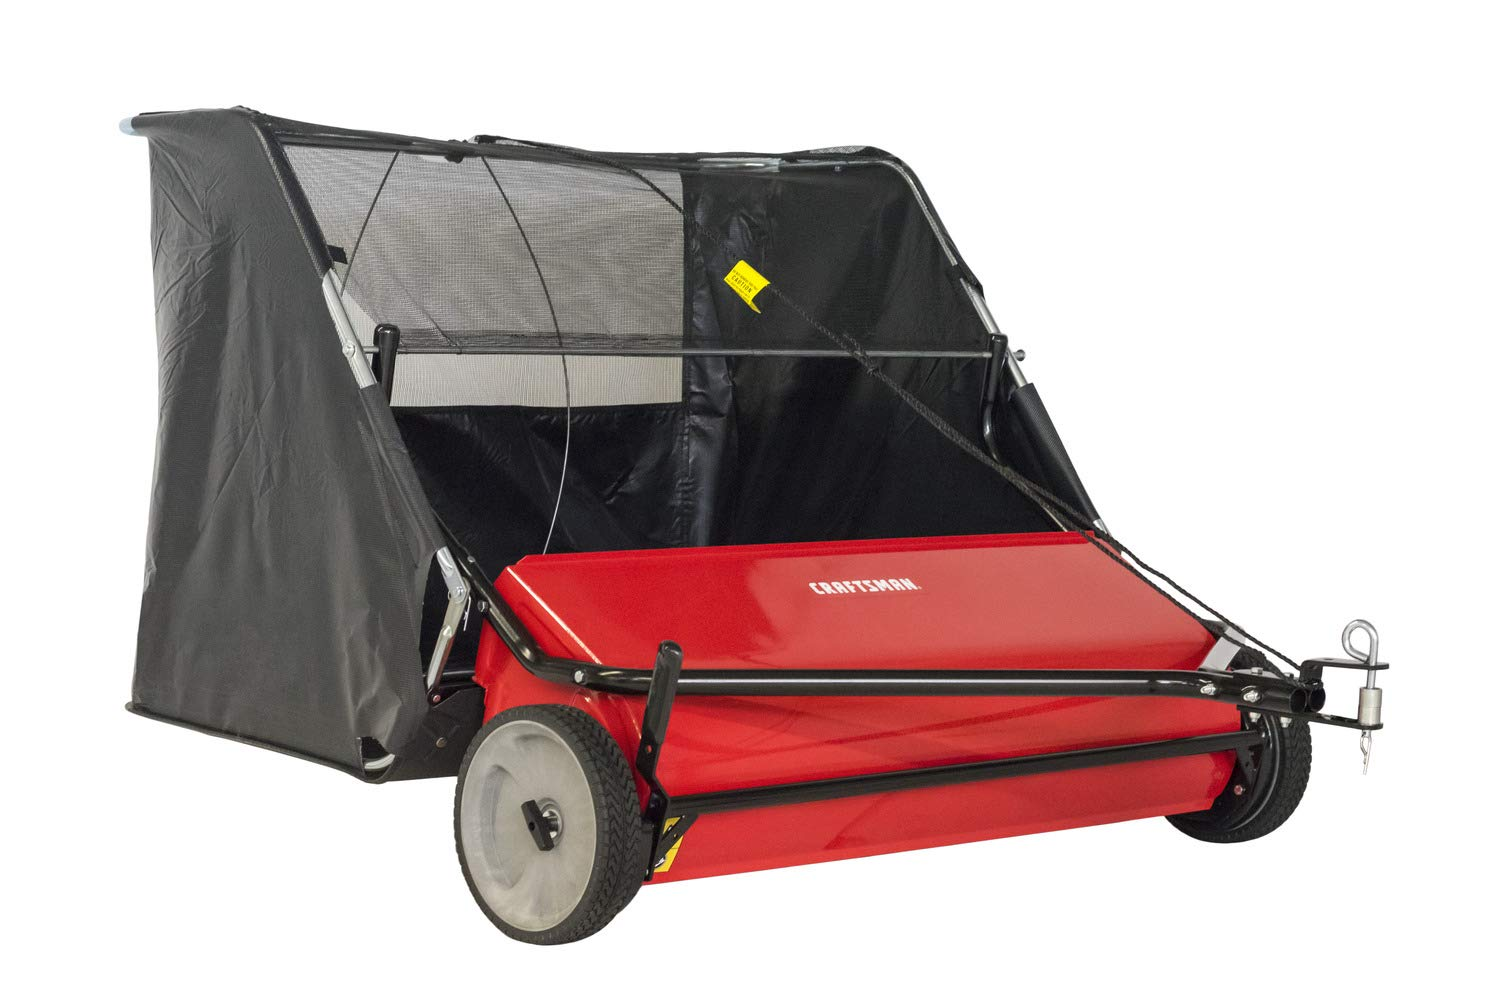 Craftsman CMXGZBF7124266 42 22-cu ft Hi-Speed Tow Lawn Sweeper, Red by Craftsman